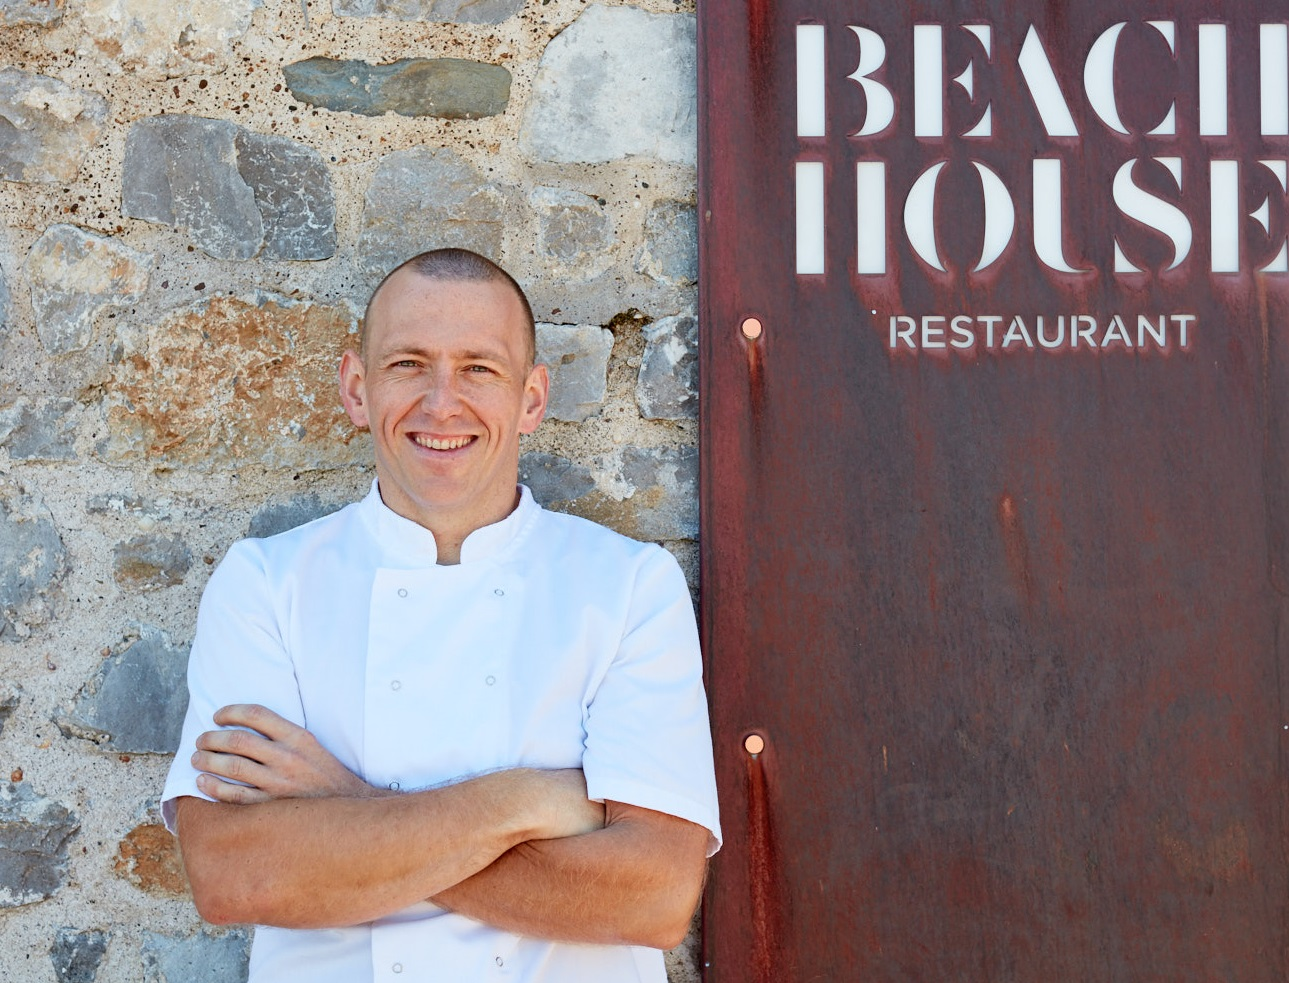 Hywel Griffith of Beach House in Oxwich on the Gower Peninsular is among the line-up of speakers at 2019's Abergavenny Food Festival.